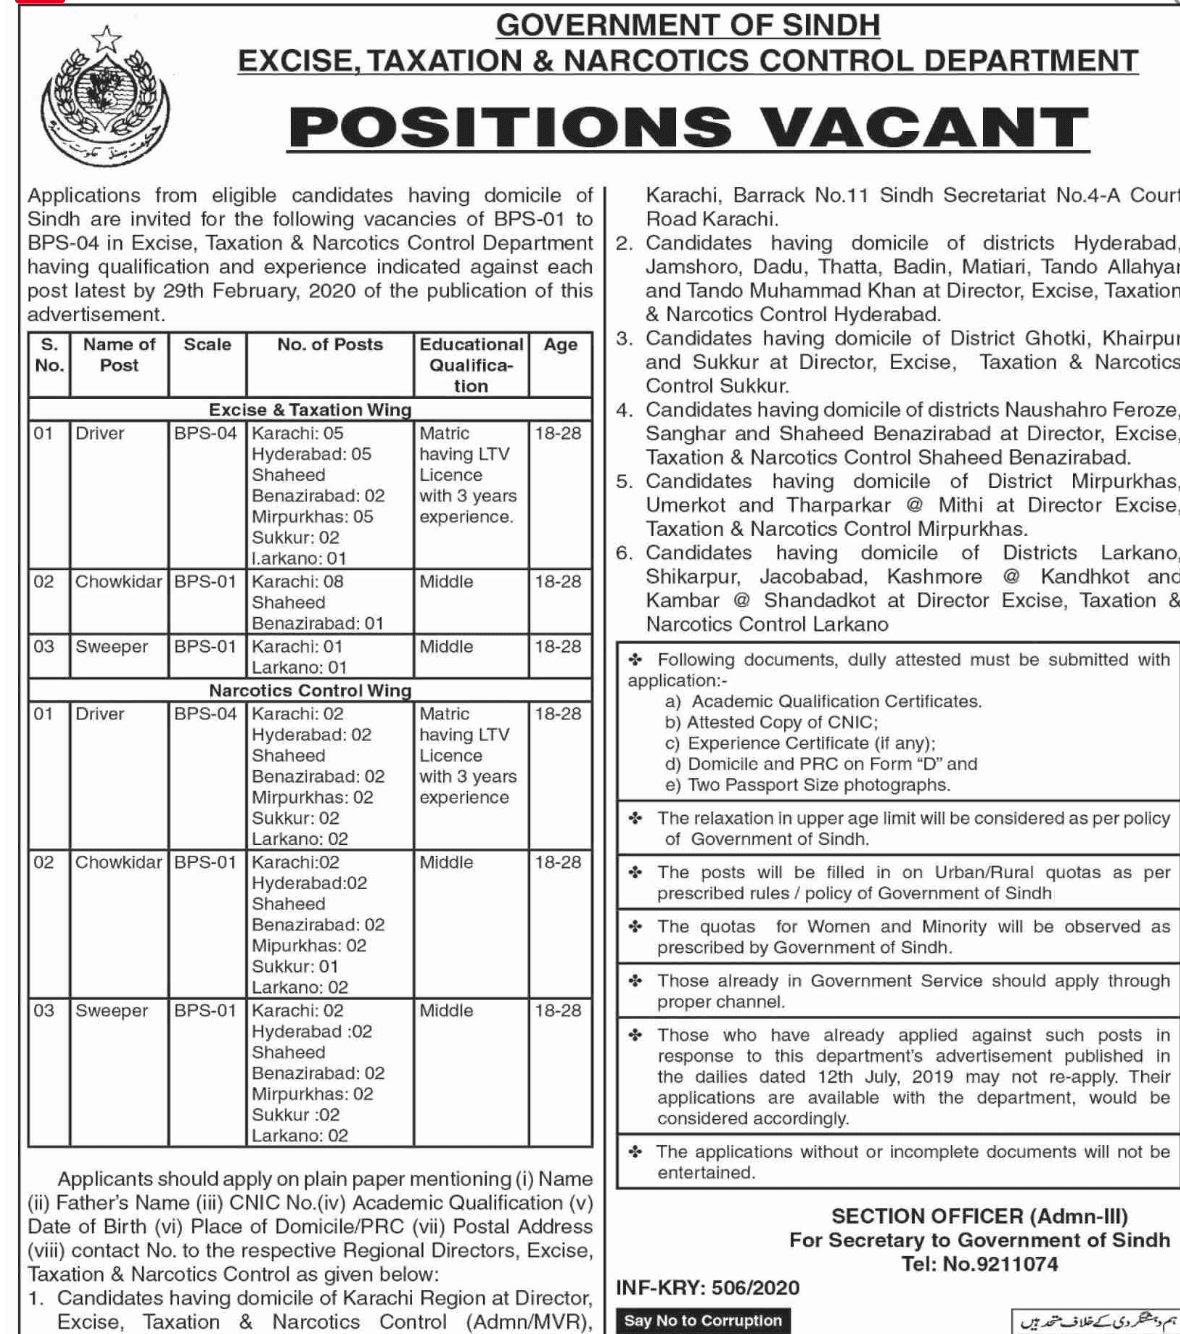 Jobs in Excise, Taxation and Narcotics Control Department Govt of Sindh 2020